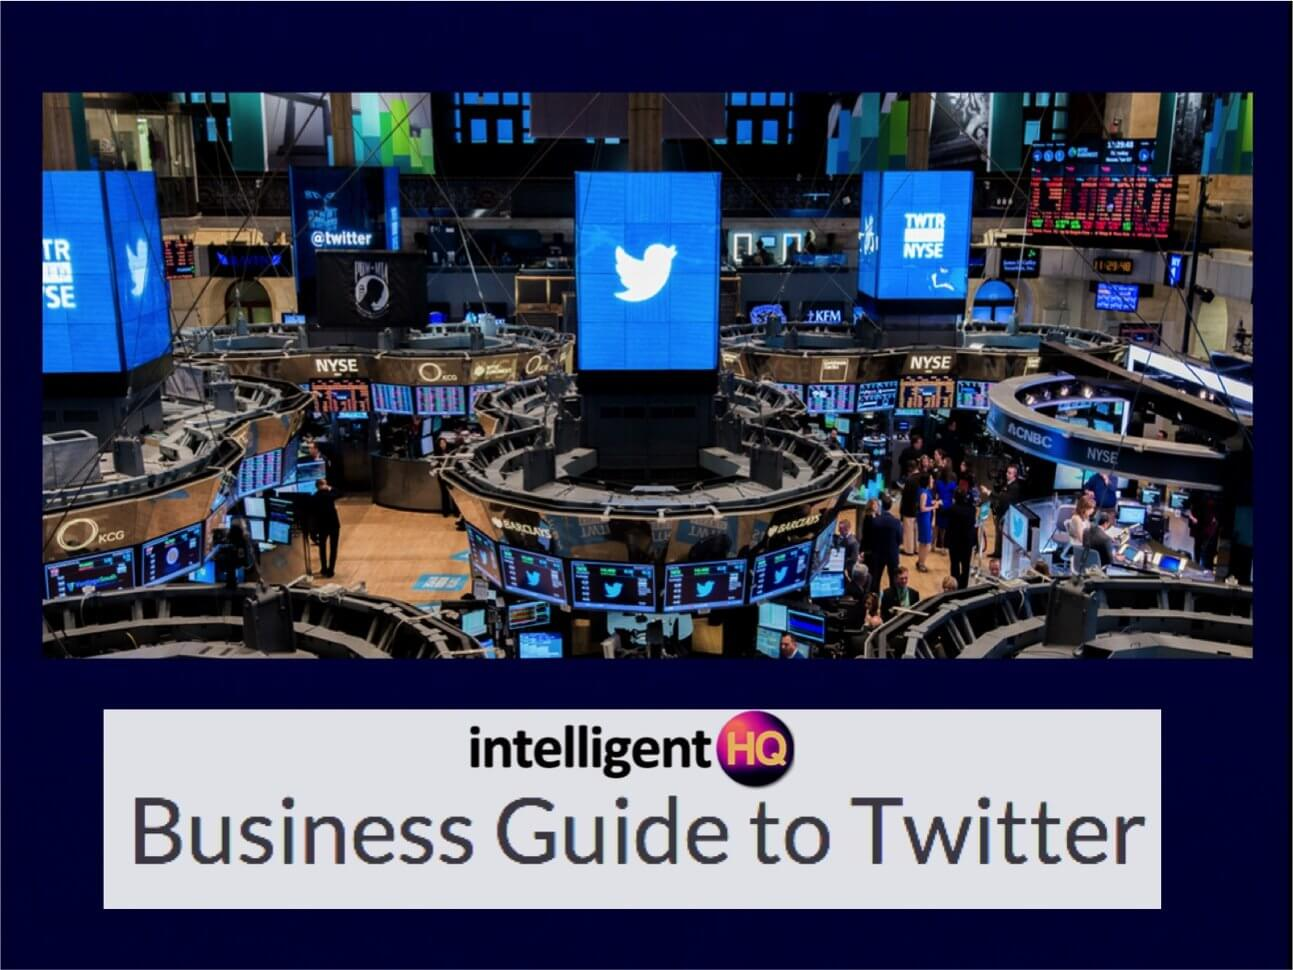 Intelligenthq Business Guide to Twitter